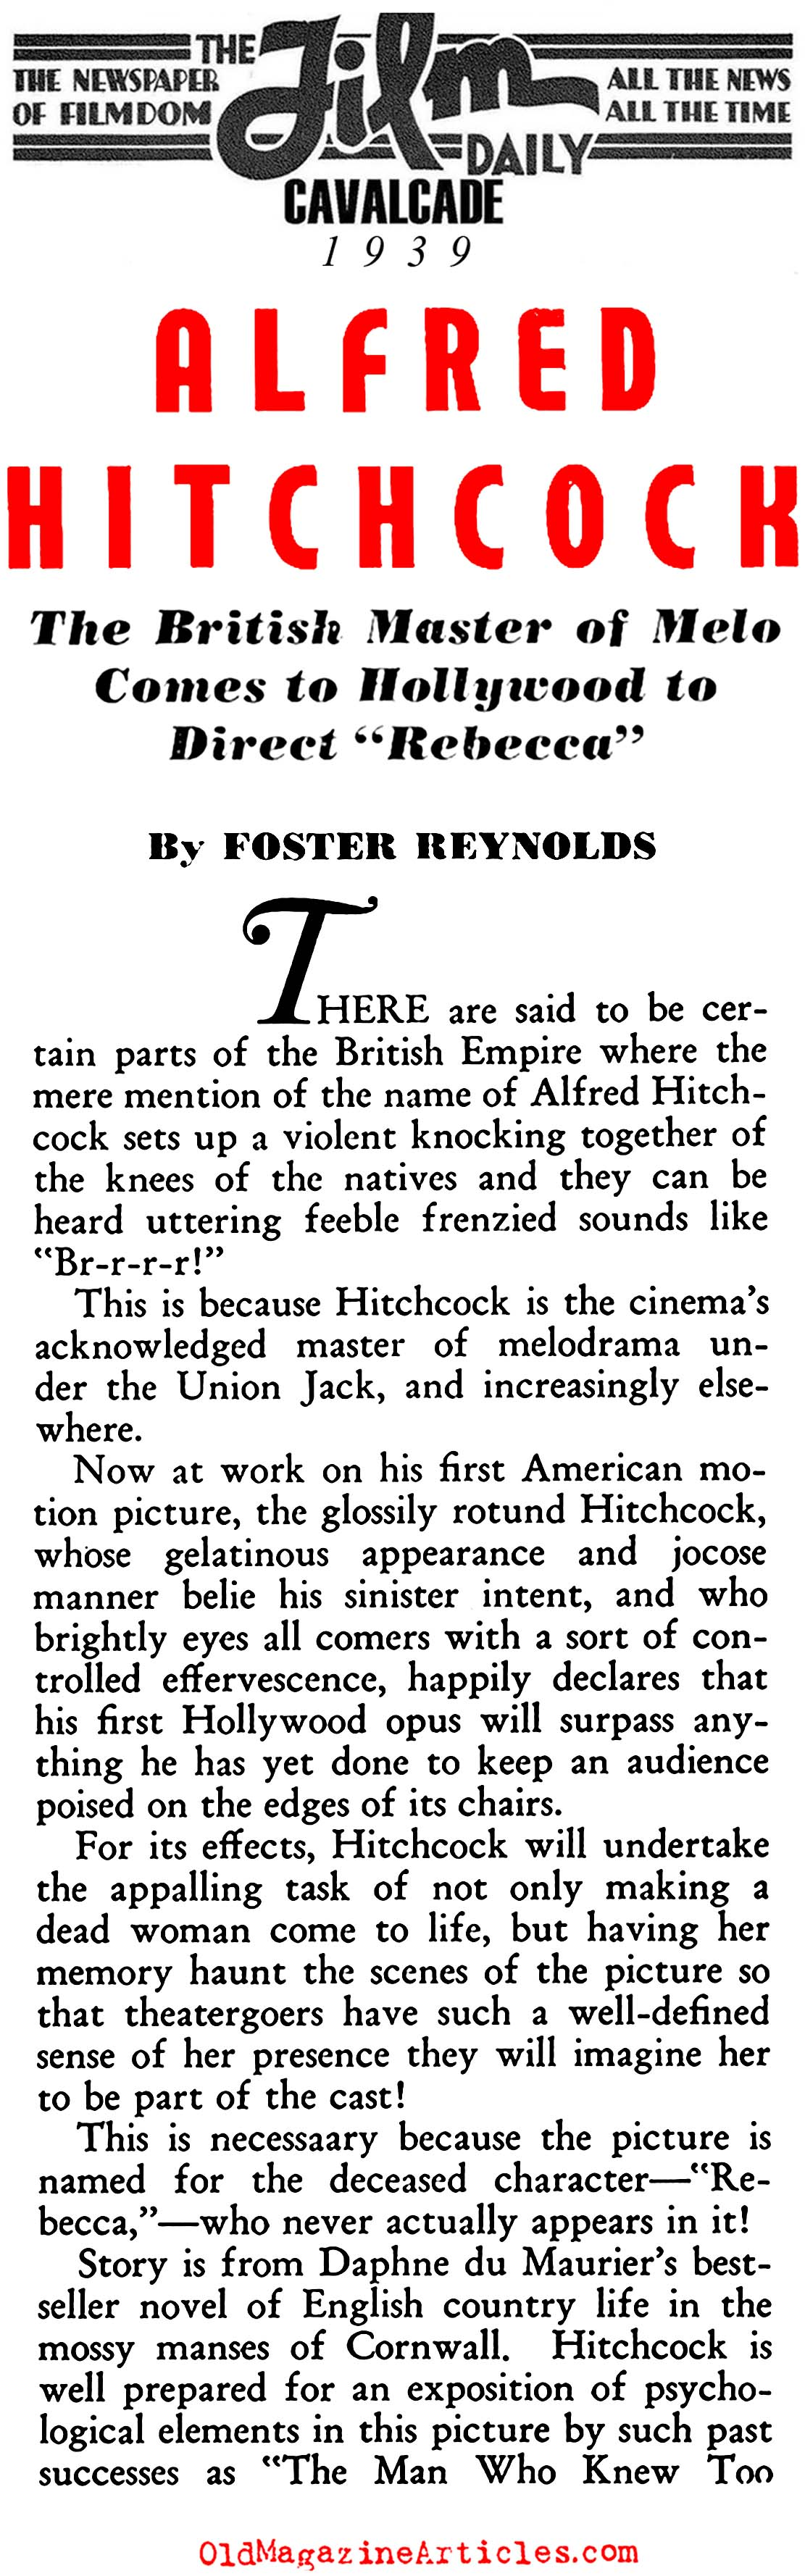 Director Alfred Hitchcock (Film Daily, 1939)